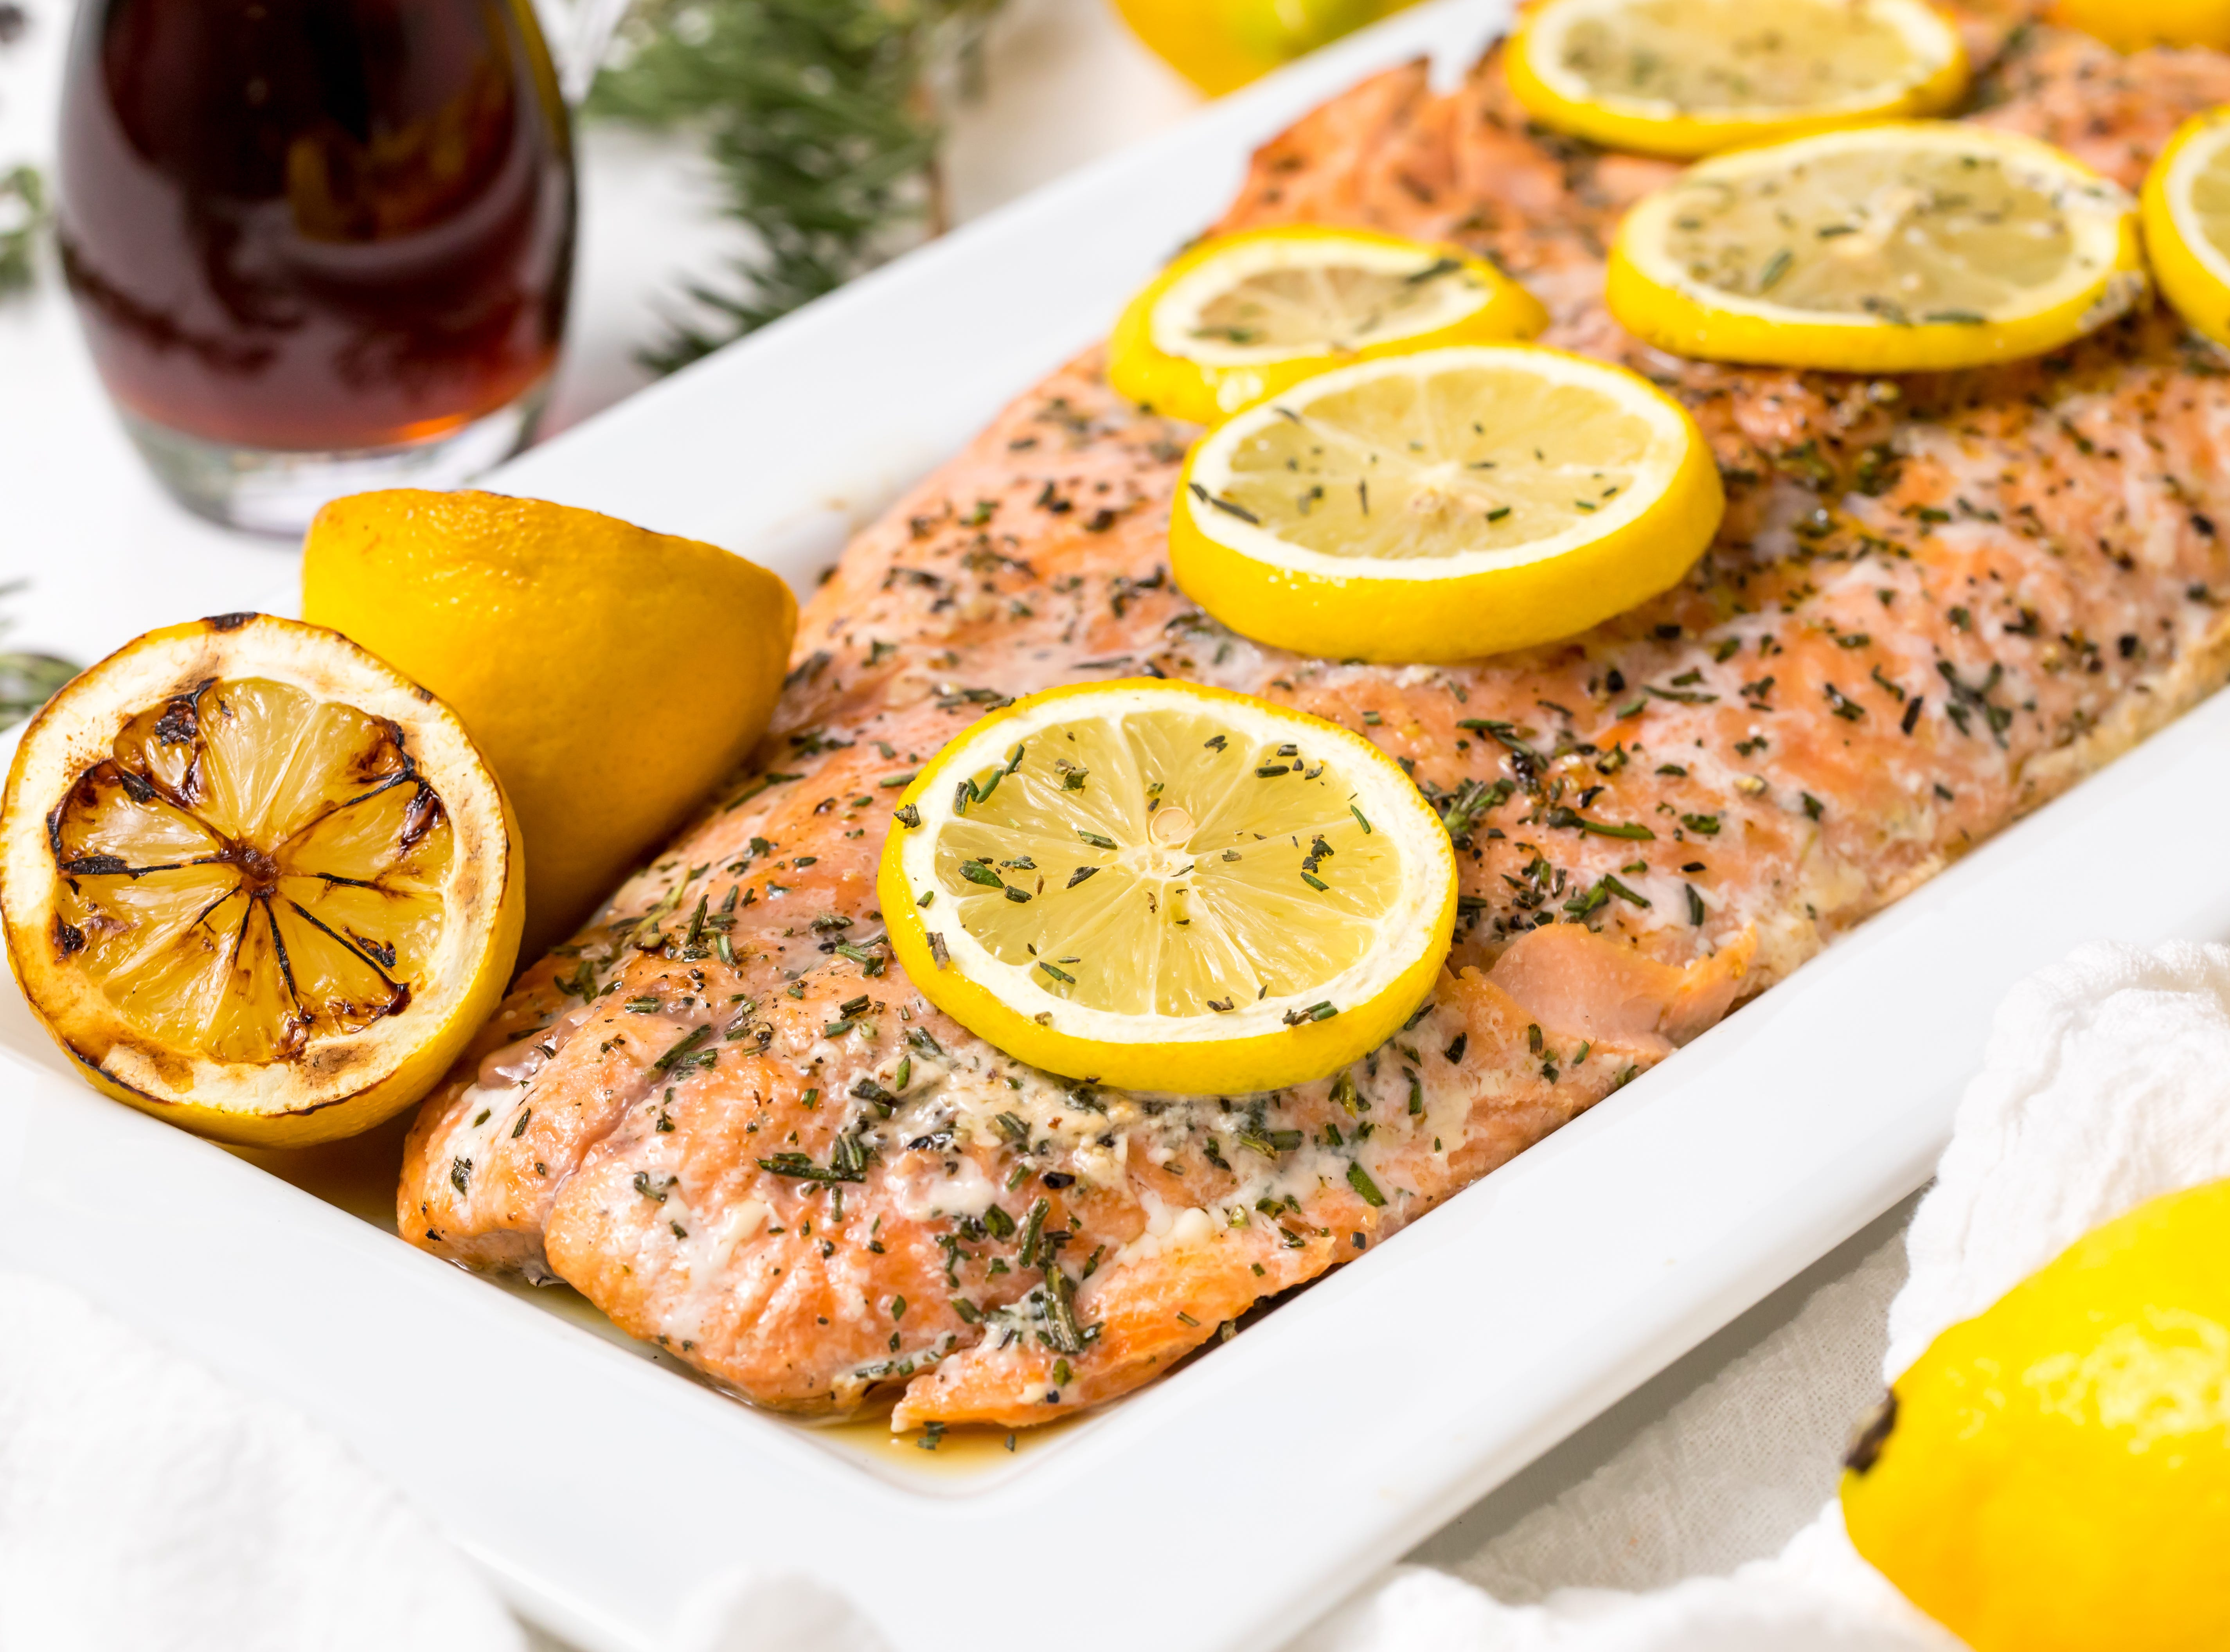 Grilled salmon with maple syrup and rosemary